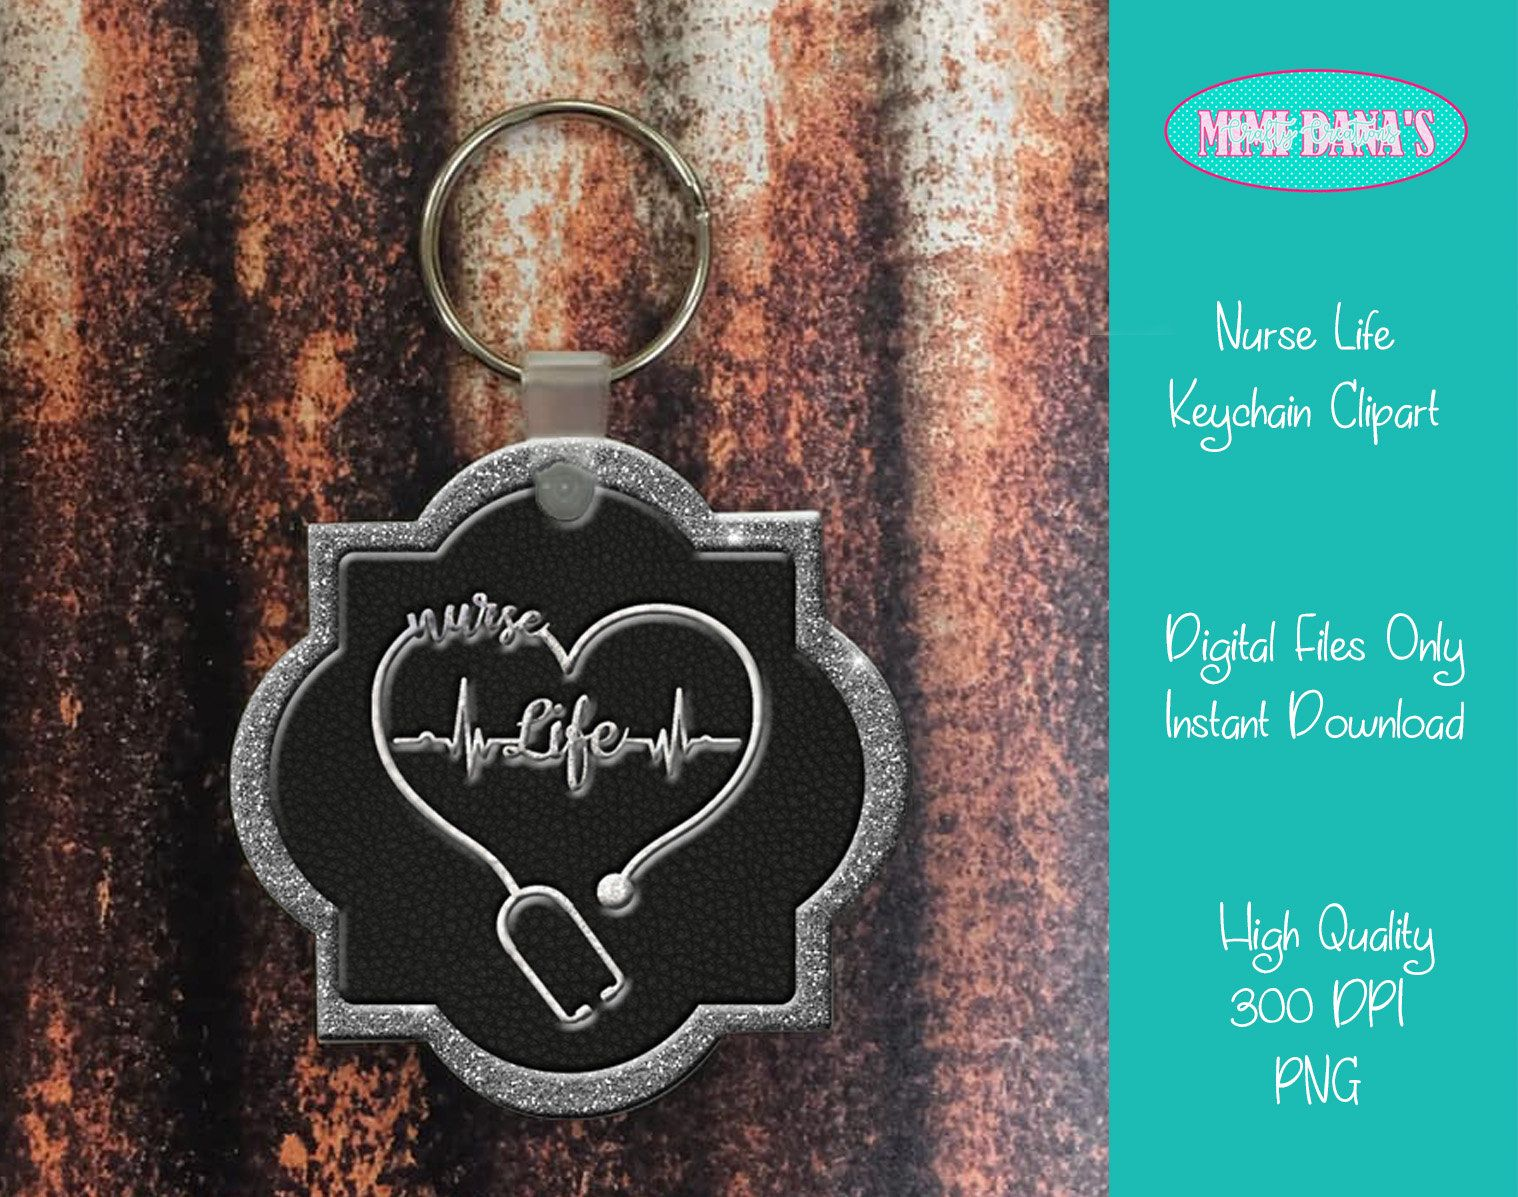 Ten Keychain Display Card Svgs Keychain Display Card Svg Svg Dxf Eps Png Pdf Cricut Silhouette Display Card Svg Keyring Display Card Dxf Keychain Display Display Cards Diy Keyring